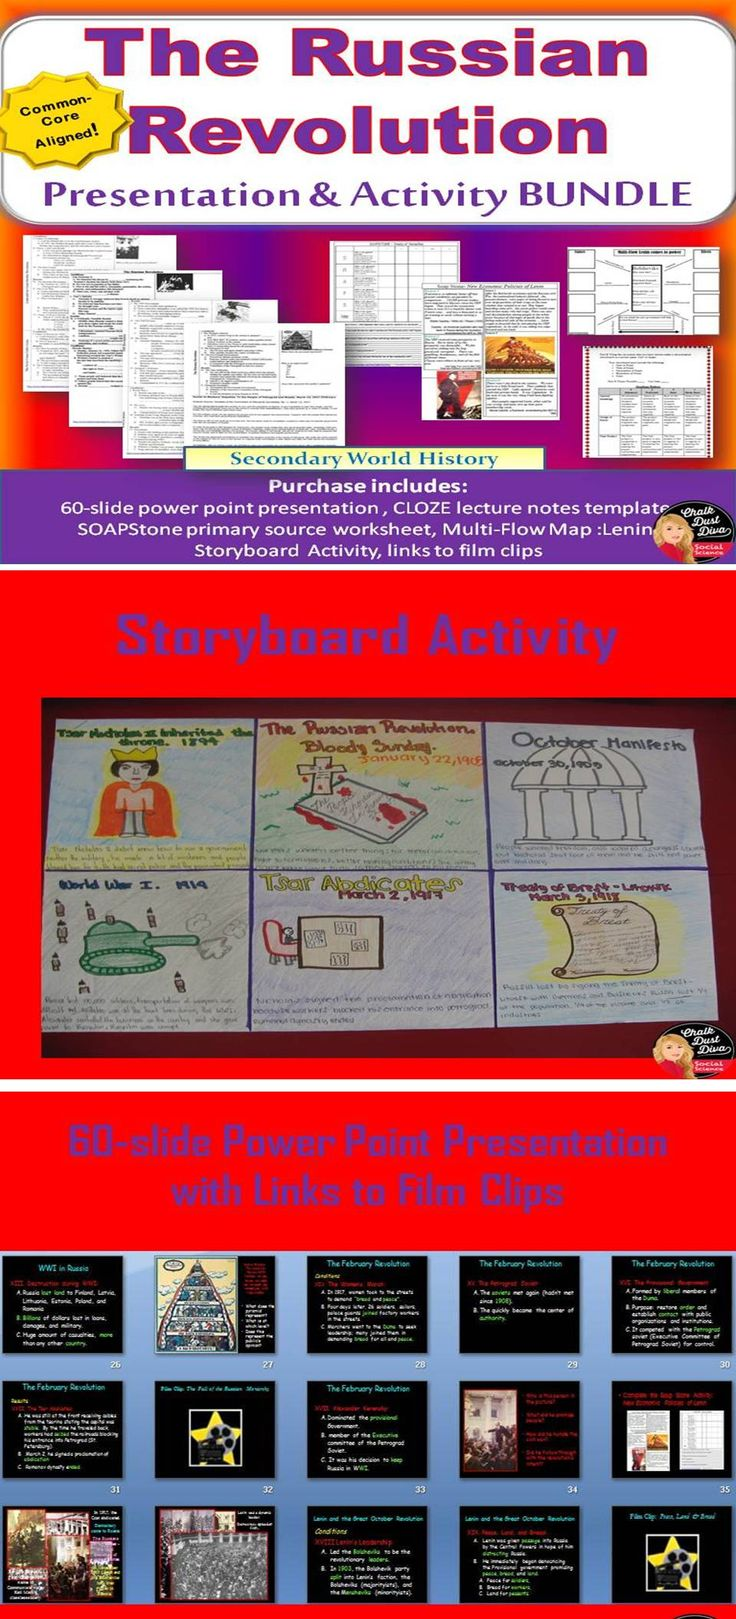 Russian Revolution Lecture and Storyboard Activity (World History)  This power point presentation reviews the major events of the Russian Revolution of 1917. Students will take CLOZE notes on the left side and analyze photographs on the right on the corresponding lecture notes. Students will analyze primary sources about Lenin's New Economic Policy. Pin it now!